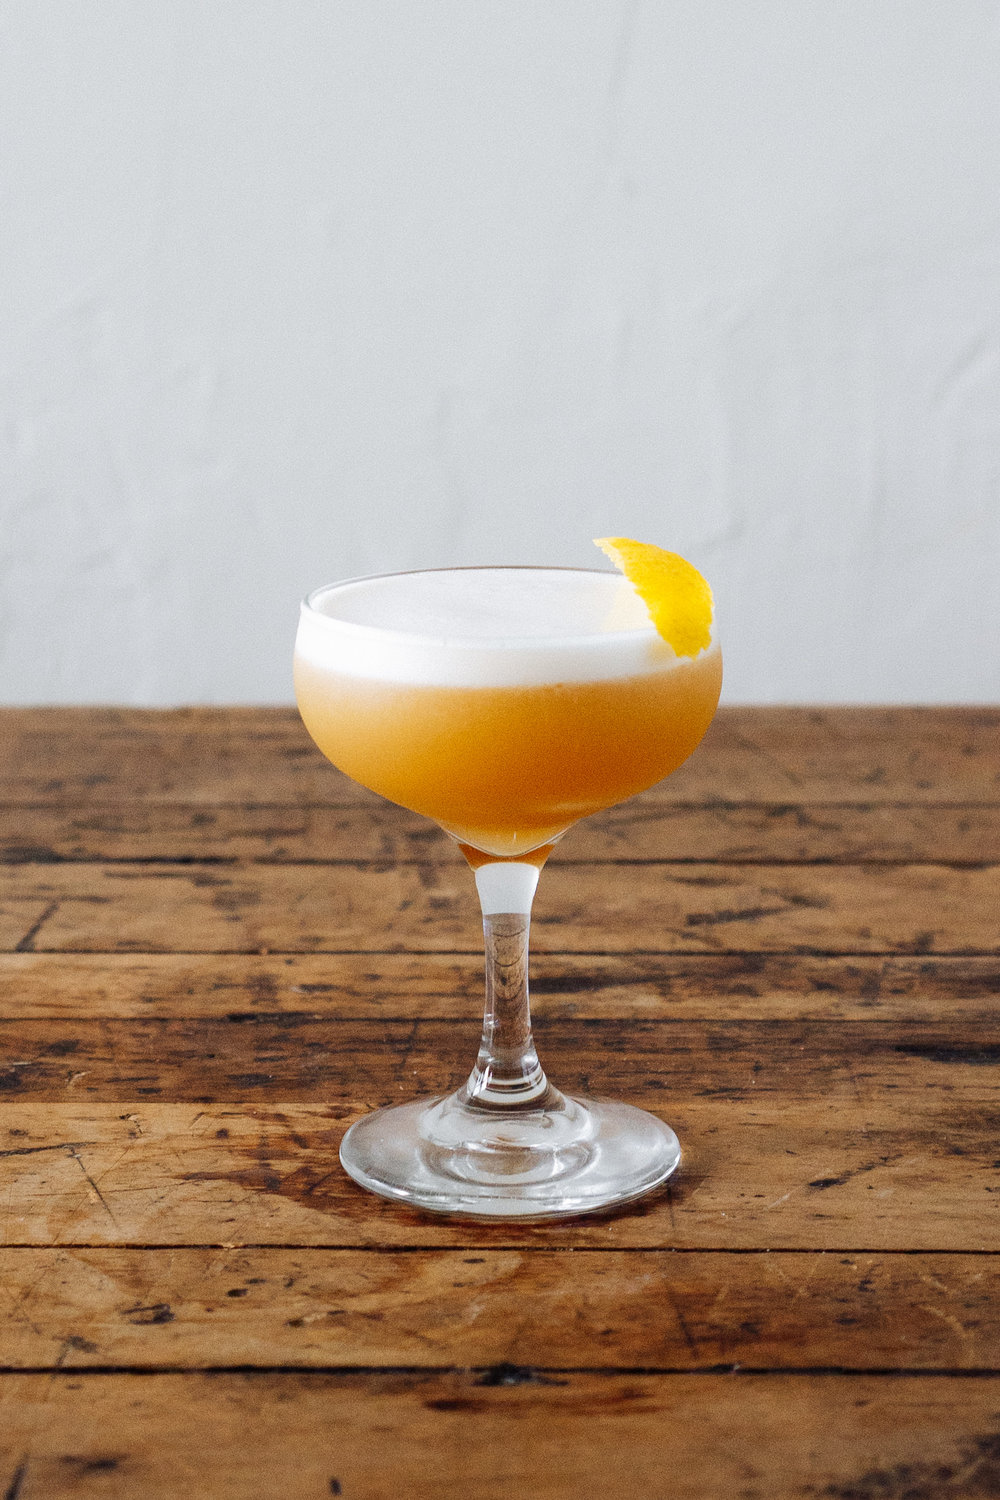 MARSHALL GOLD   1 1/2 oz Double Oak Bourbon  1/2 oz Chareau  3/4 oz Lemon Juice  1/2 oz Simple  1 Egg White  Build in tin, dry shake, wet shake, and double strain. Garnish with lemon peel.